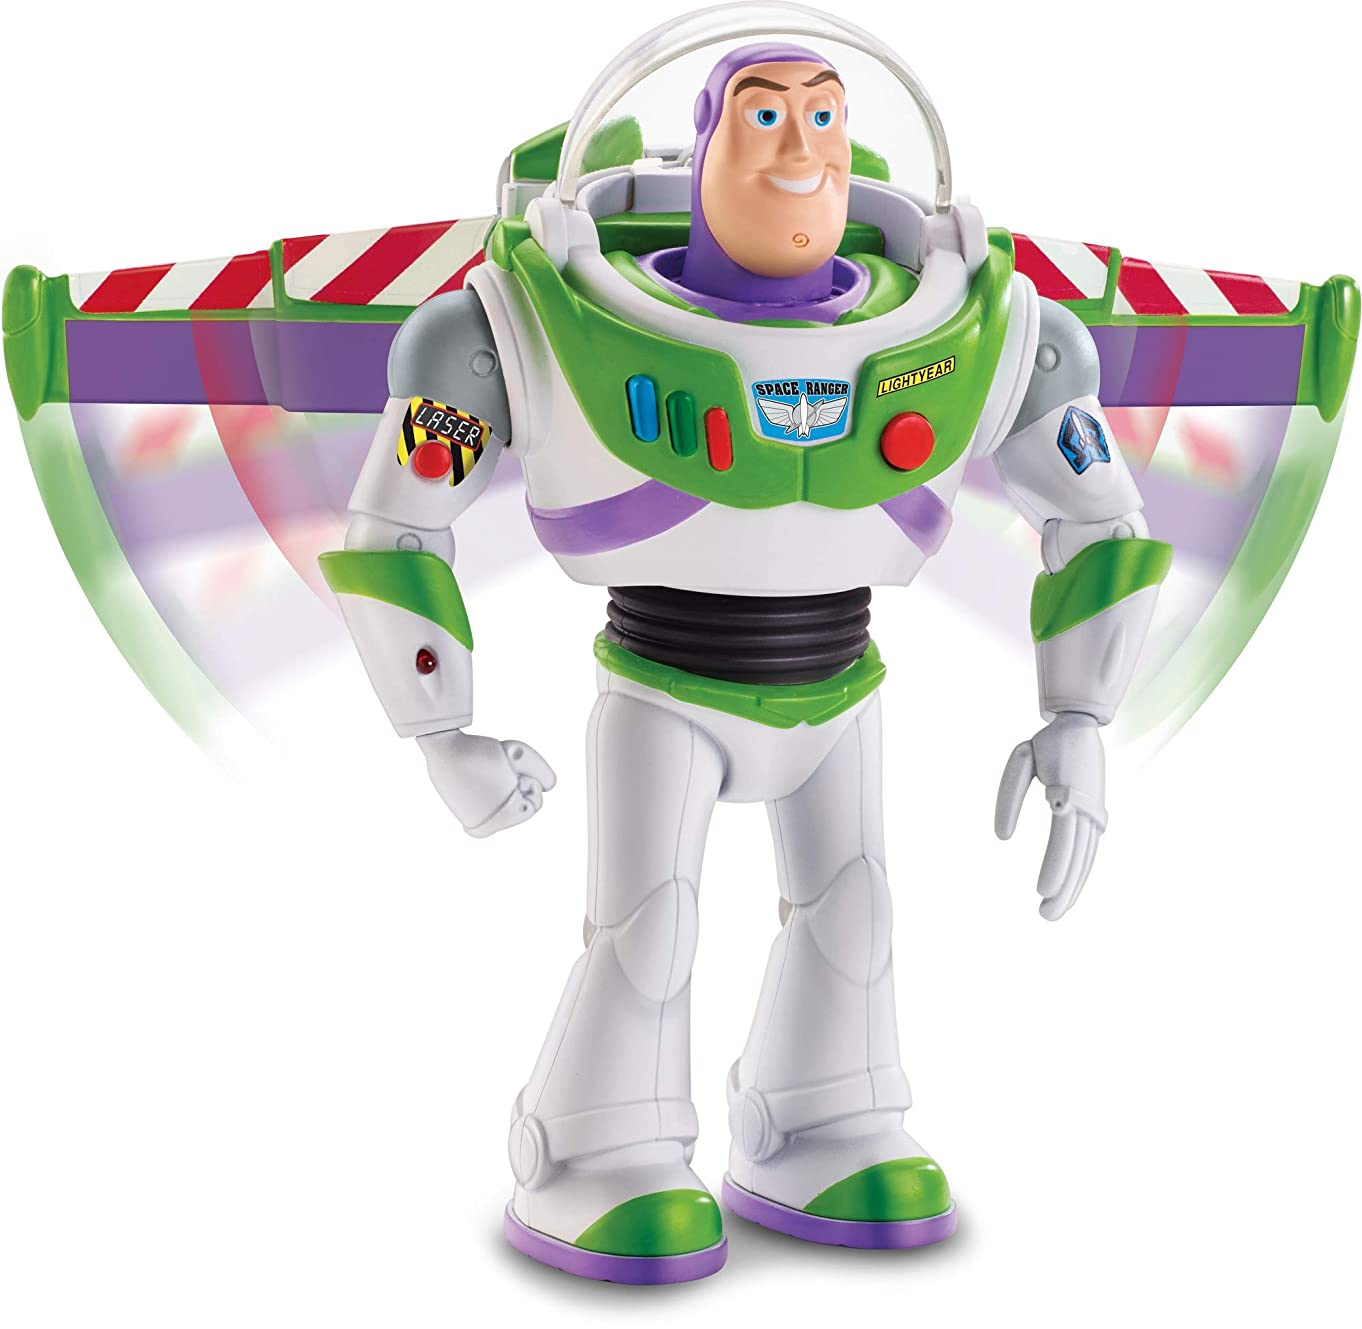 Toy Story Disney Pixar Ultimate Walking Buzz Lightyear, 7